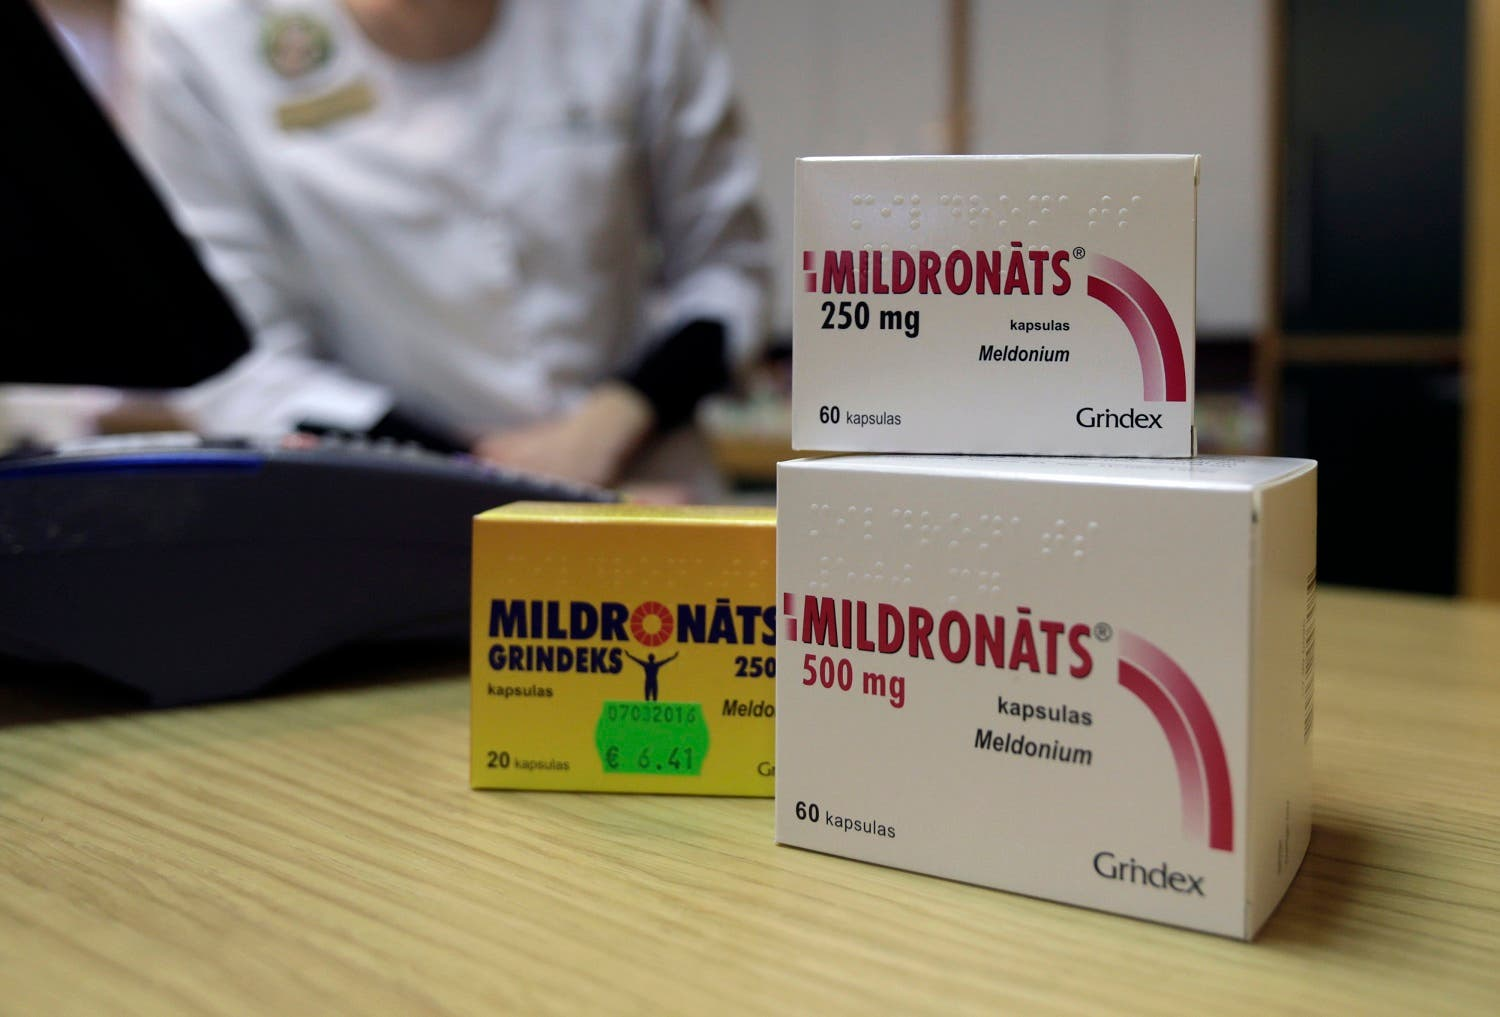 Mildronate (Meldonium) medication is pictured in the pharmacy in Saulkrasti. (Reuters)